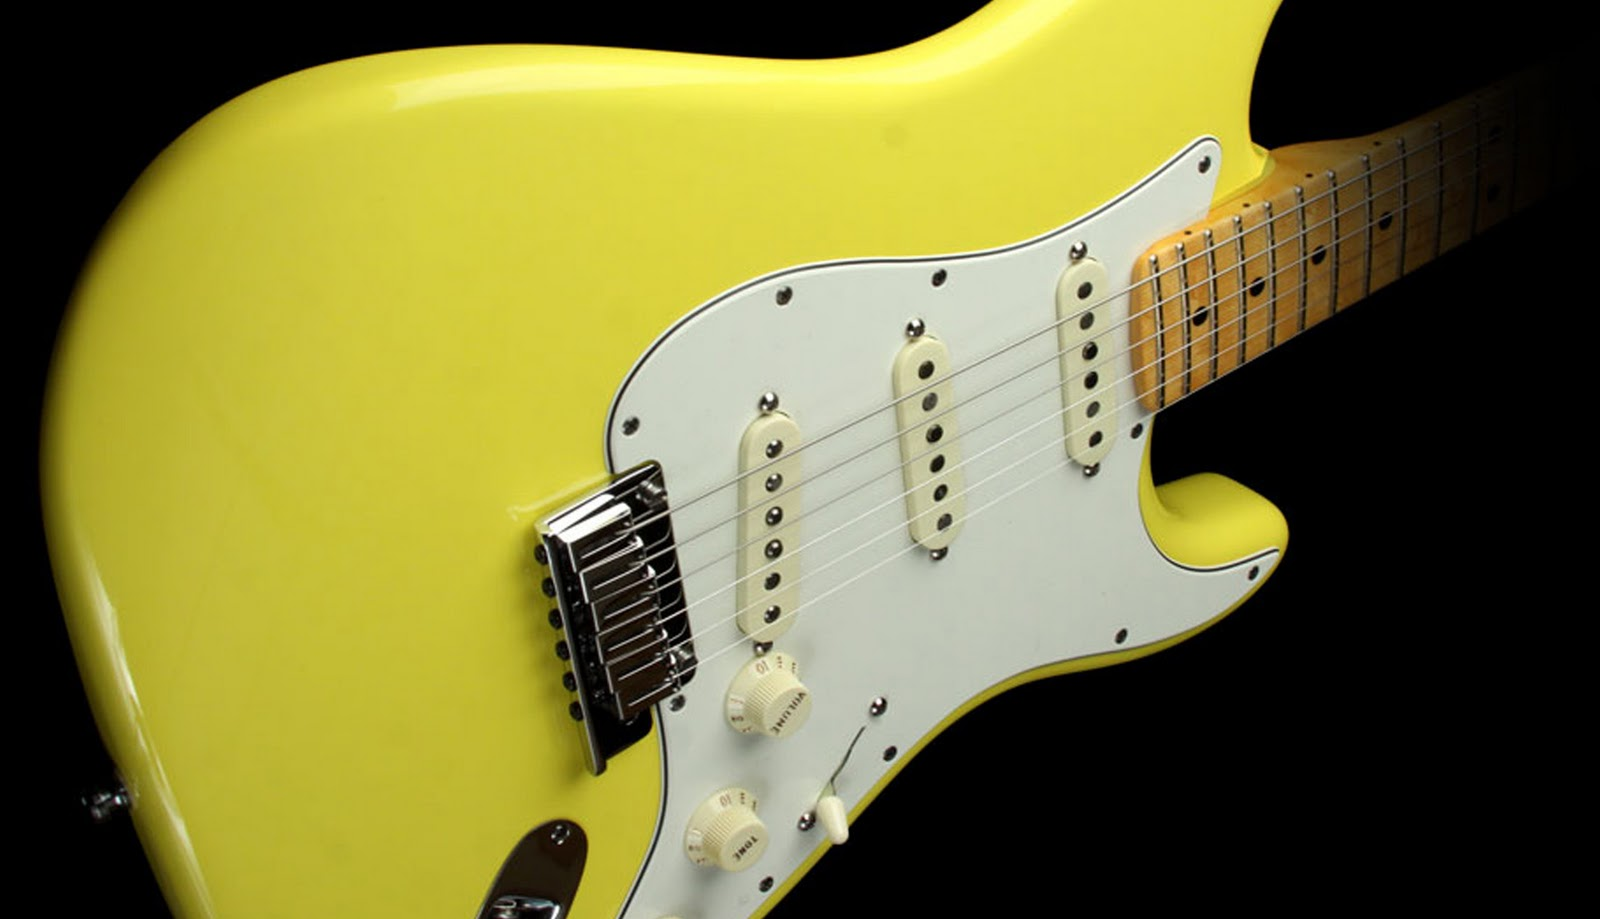 Guitar Wallpaper   Yellow Fender Stratocaster Electric Guitar   Body 1600x919